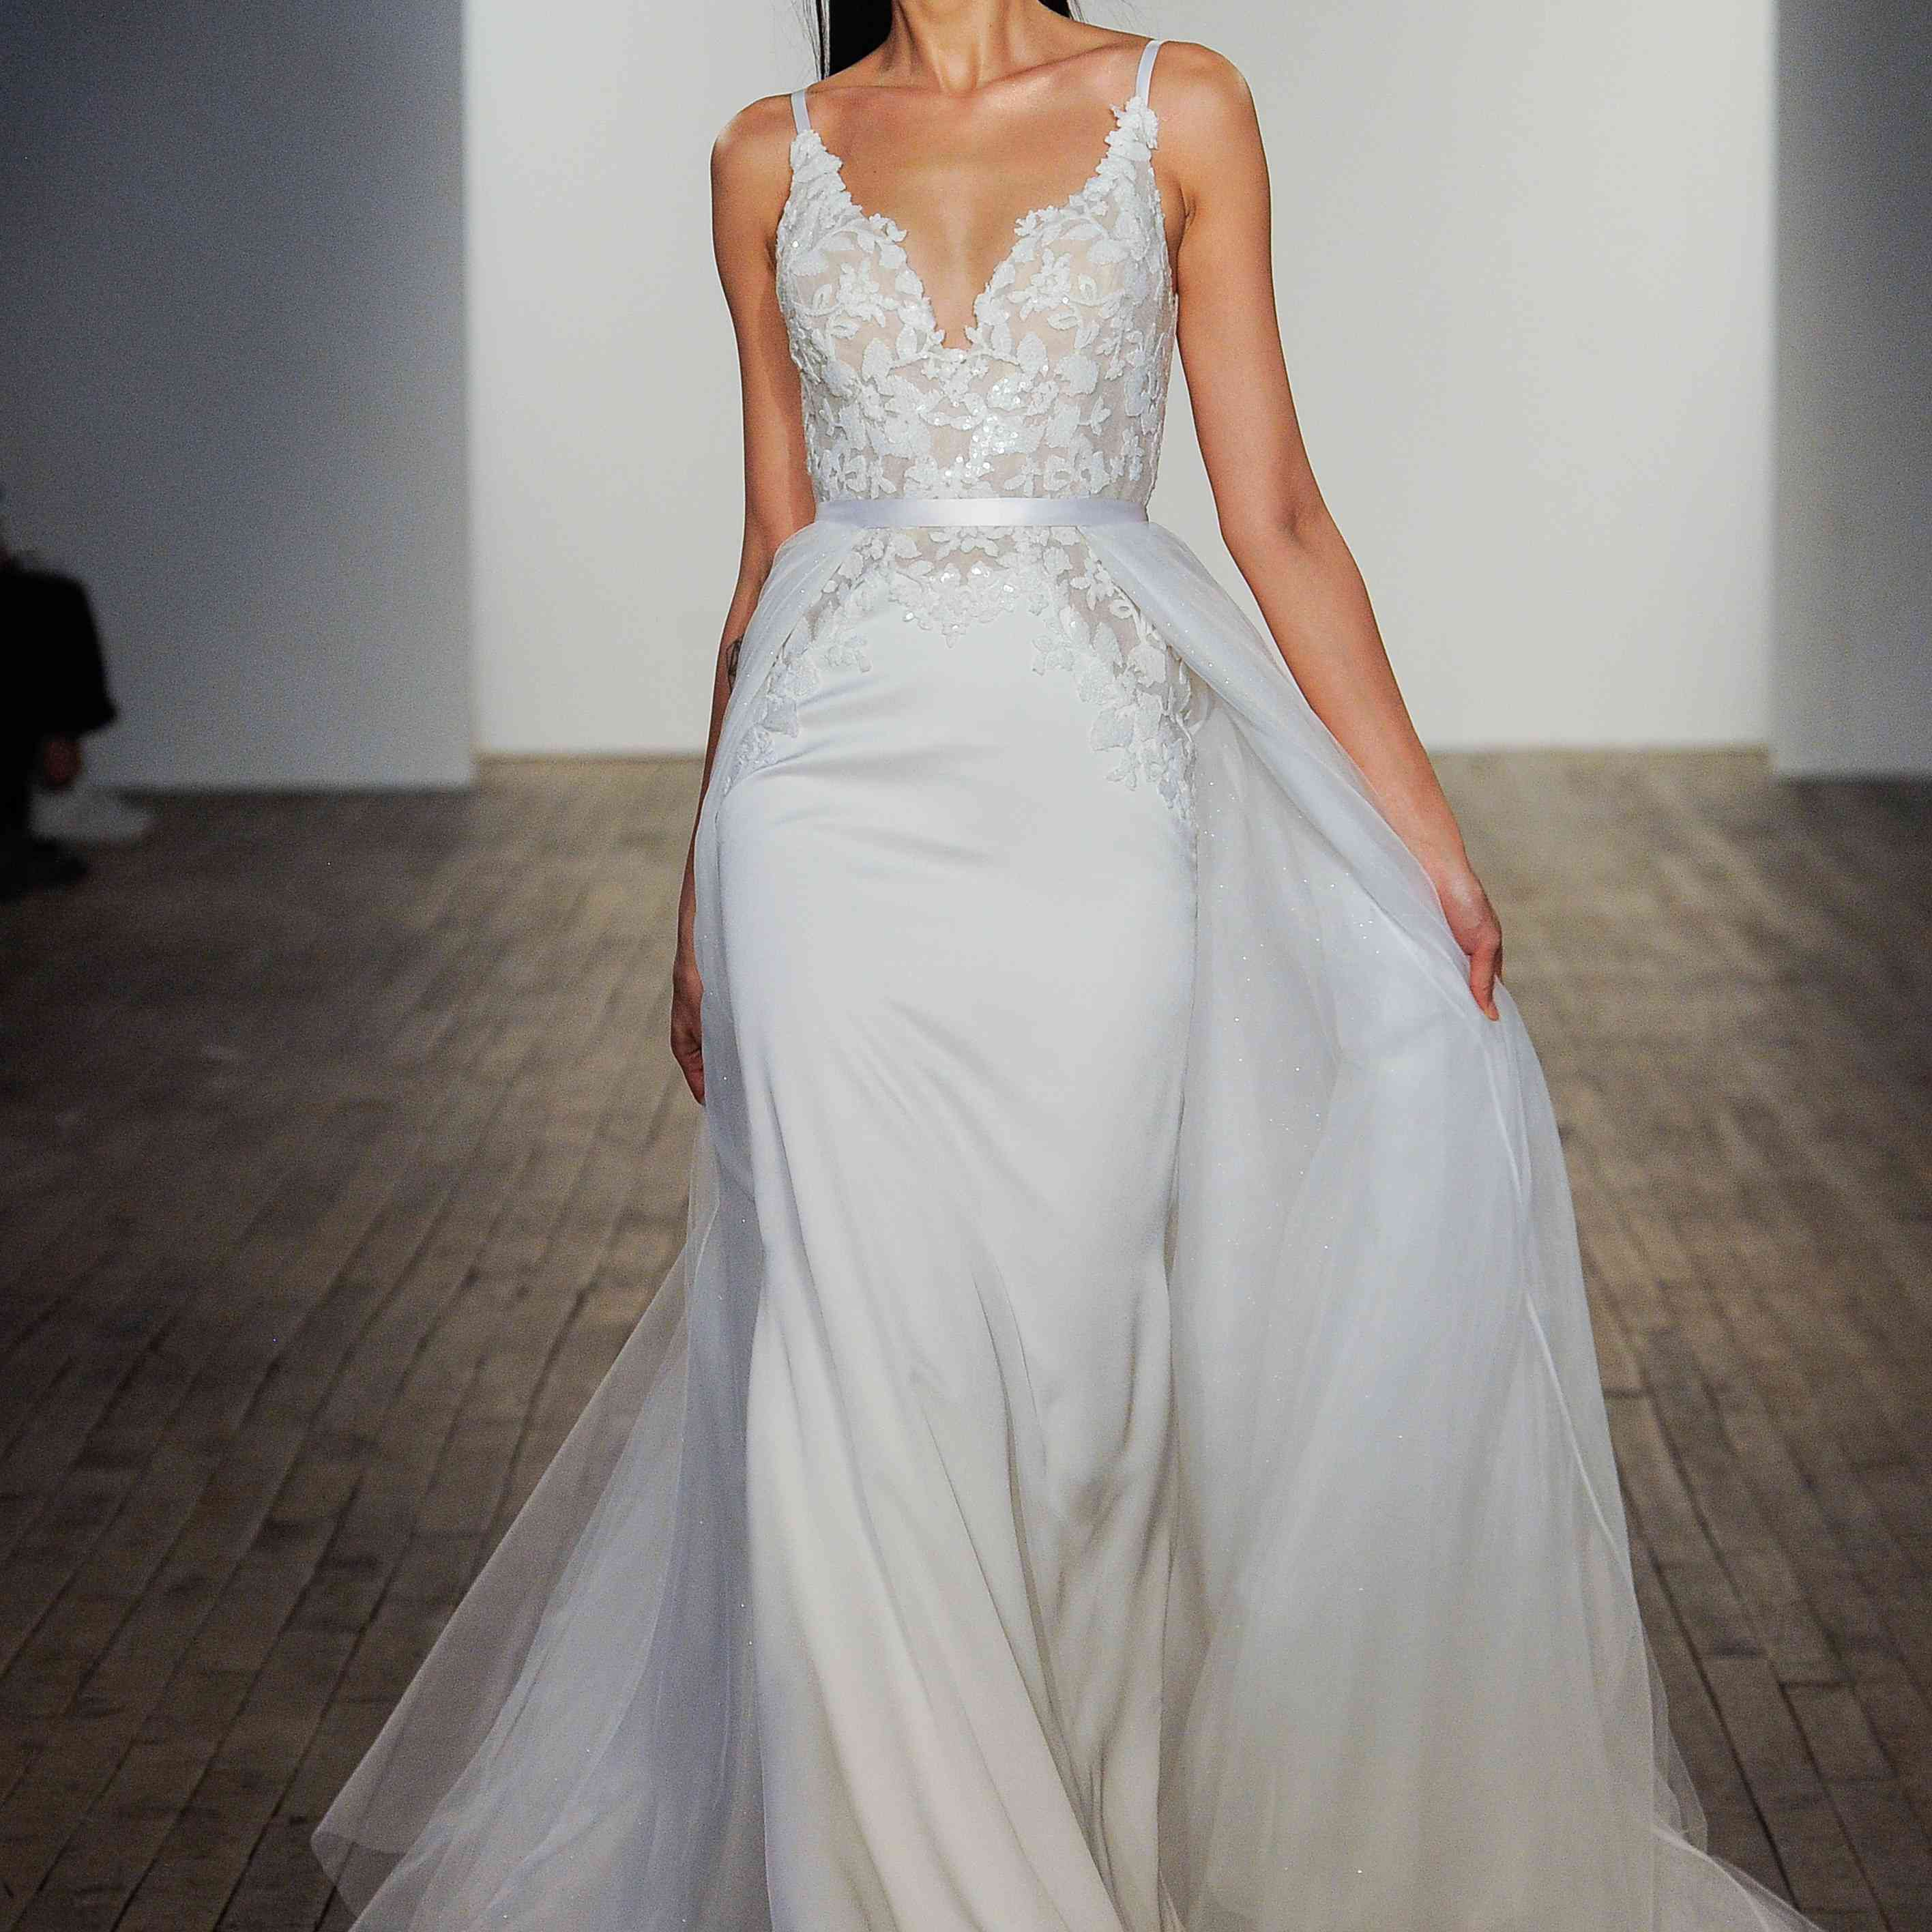 Blush By Hayley Paige Bridal & Wedding Dress Collection